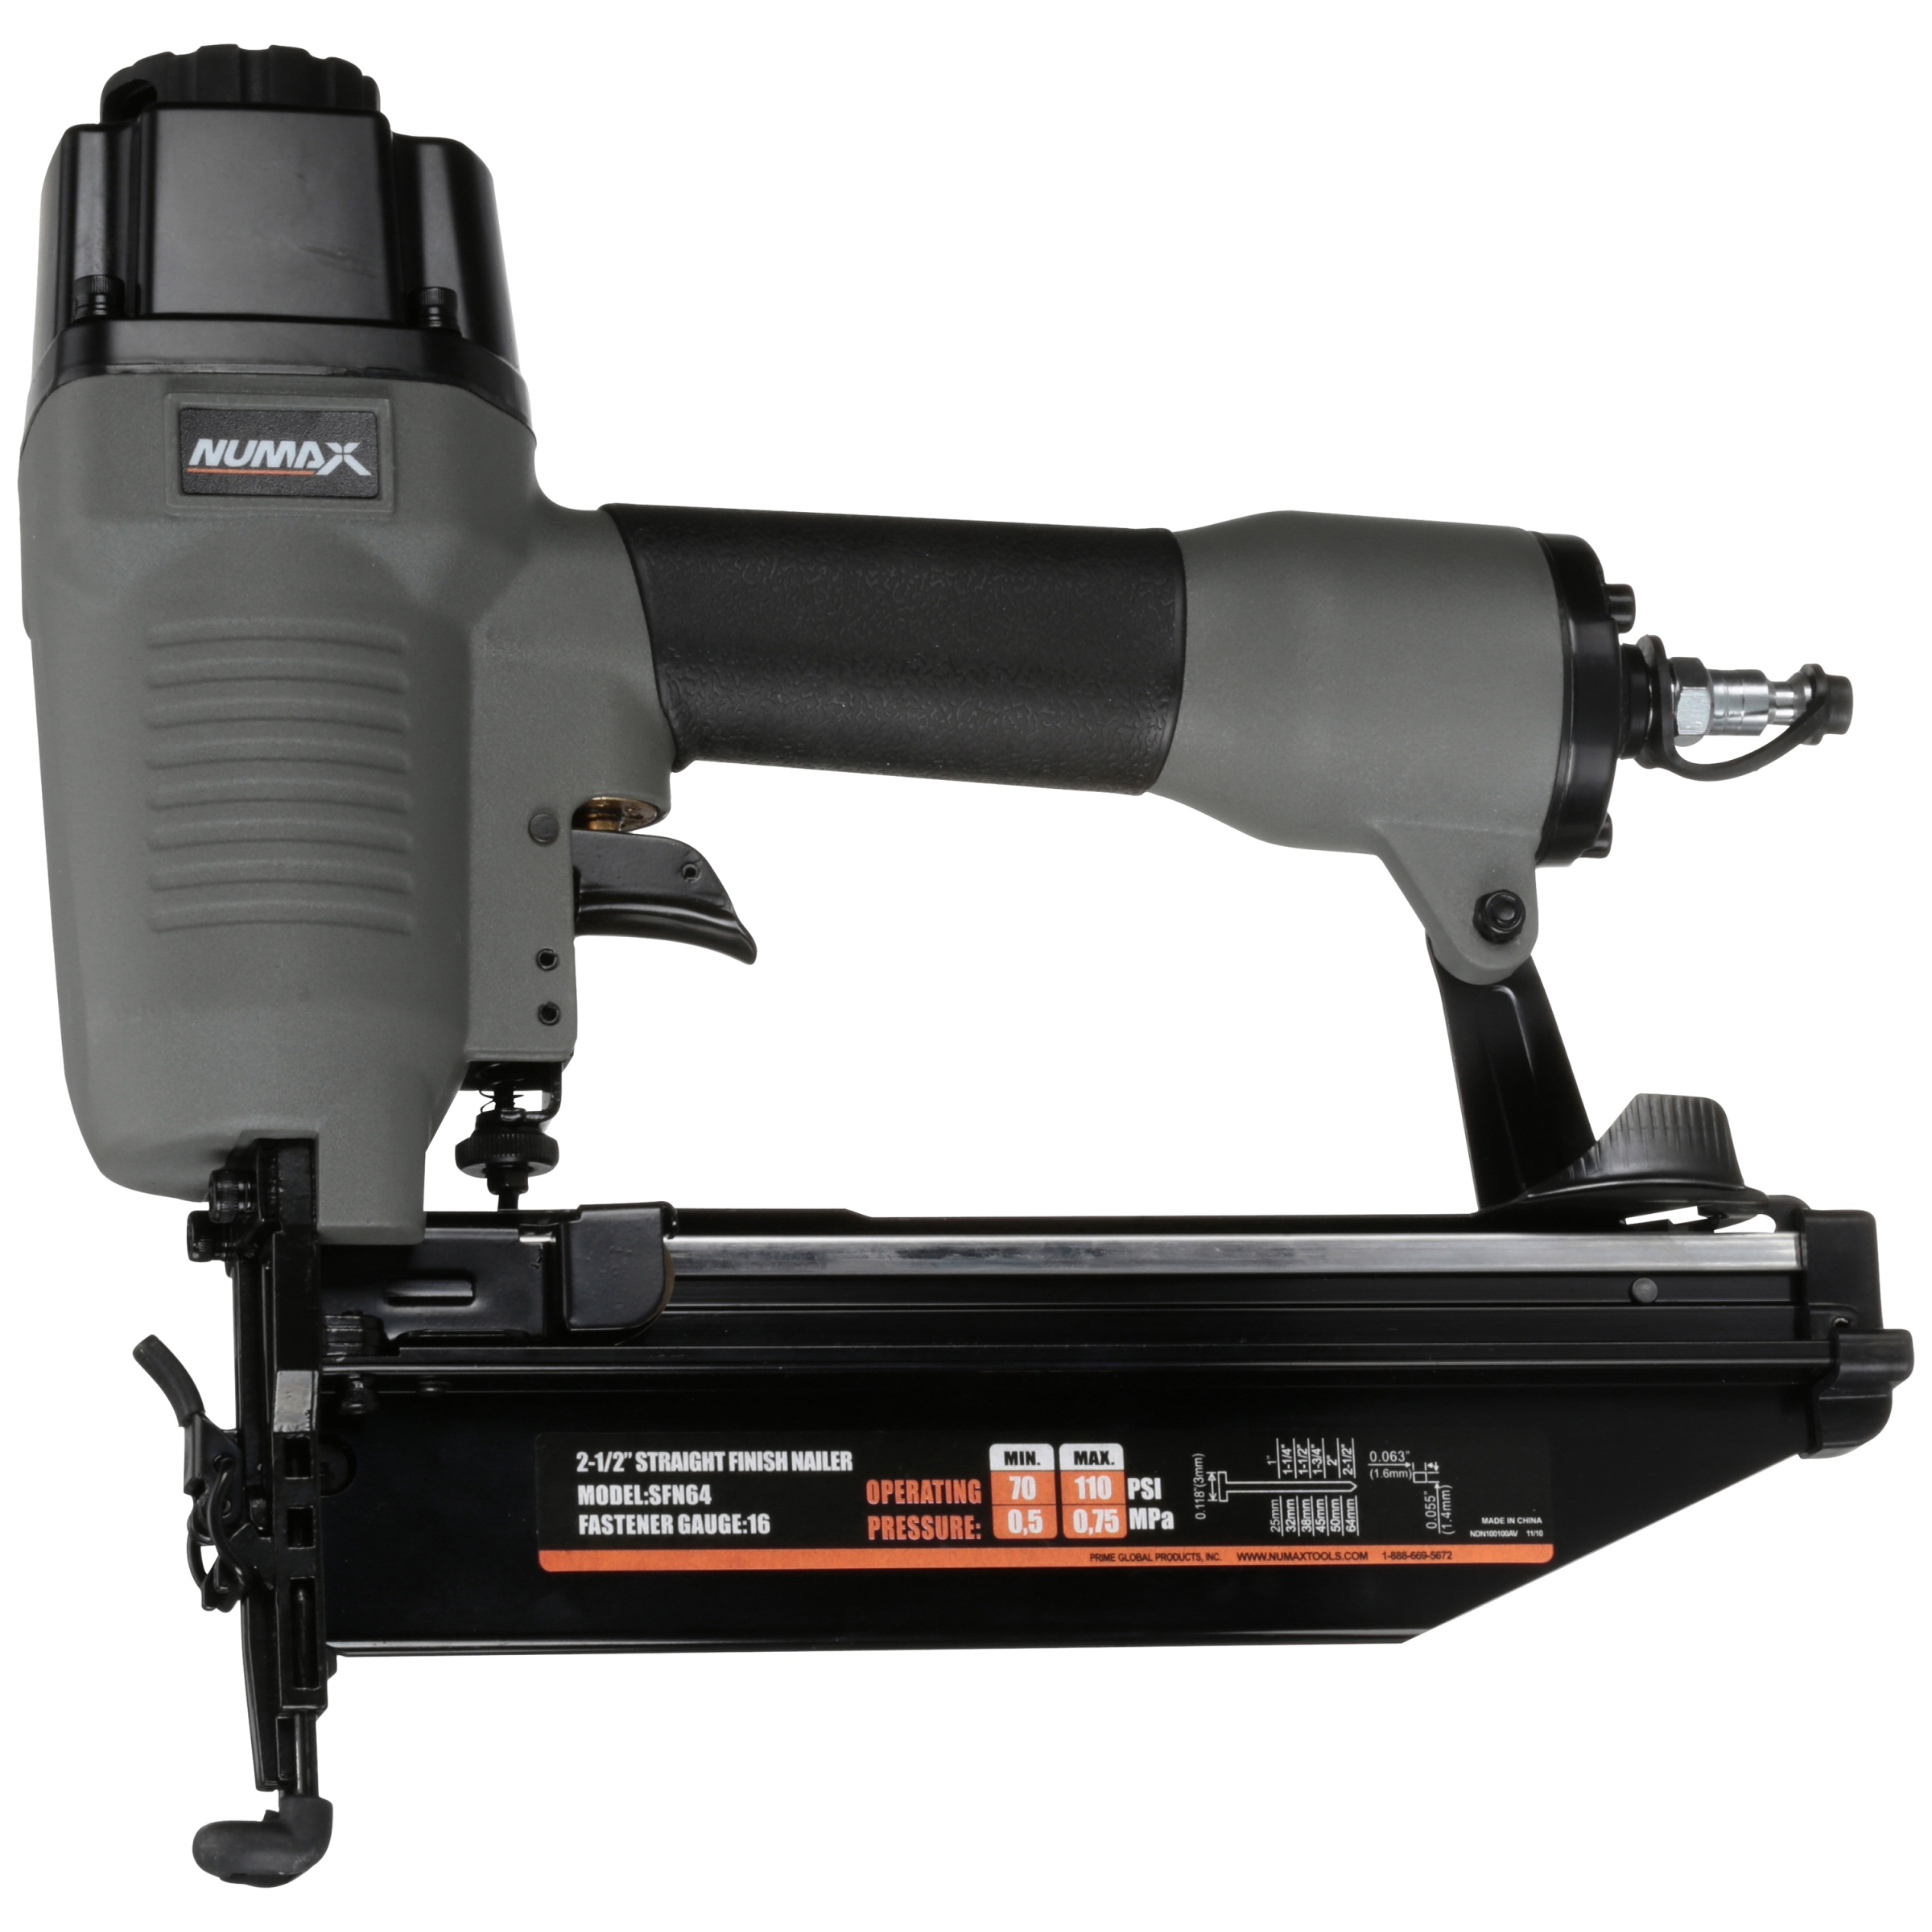 16 Gauge Finish Nailer Uses